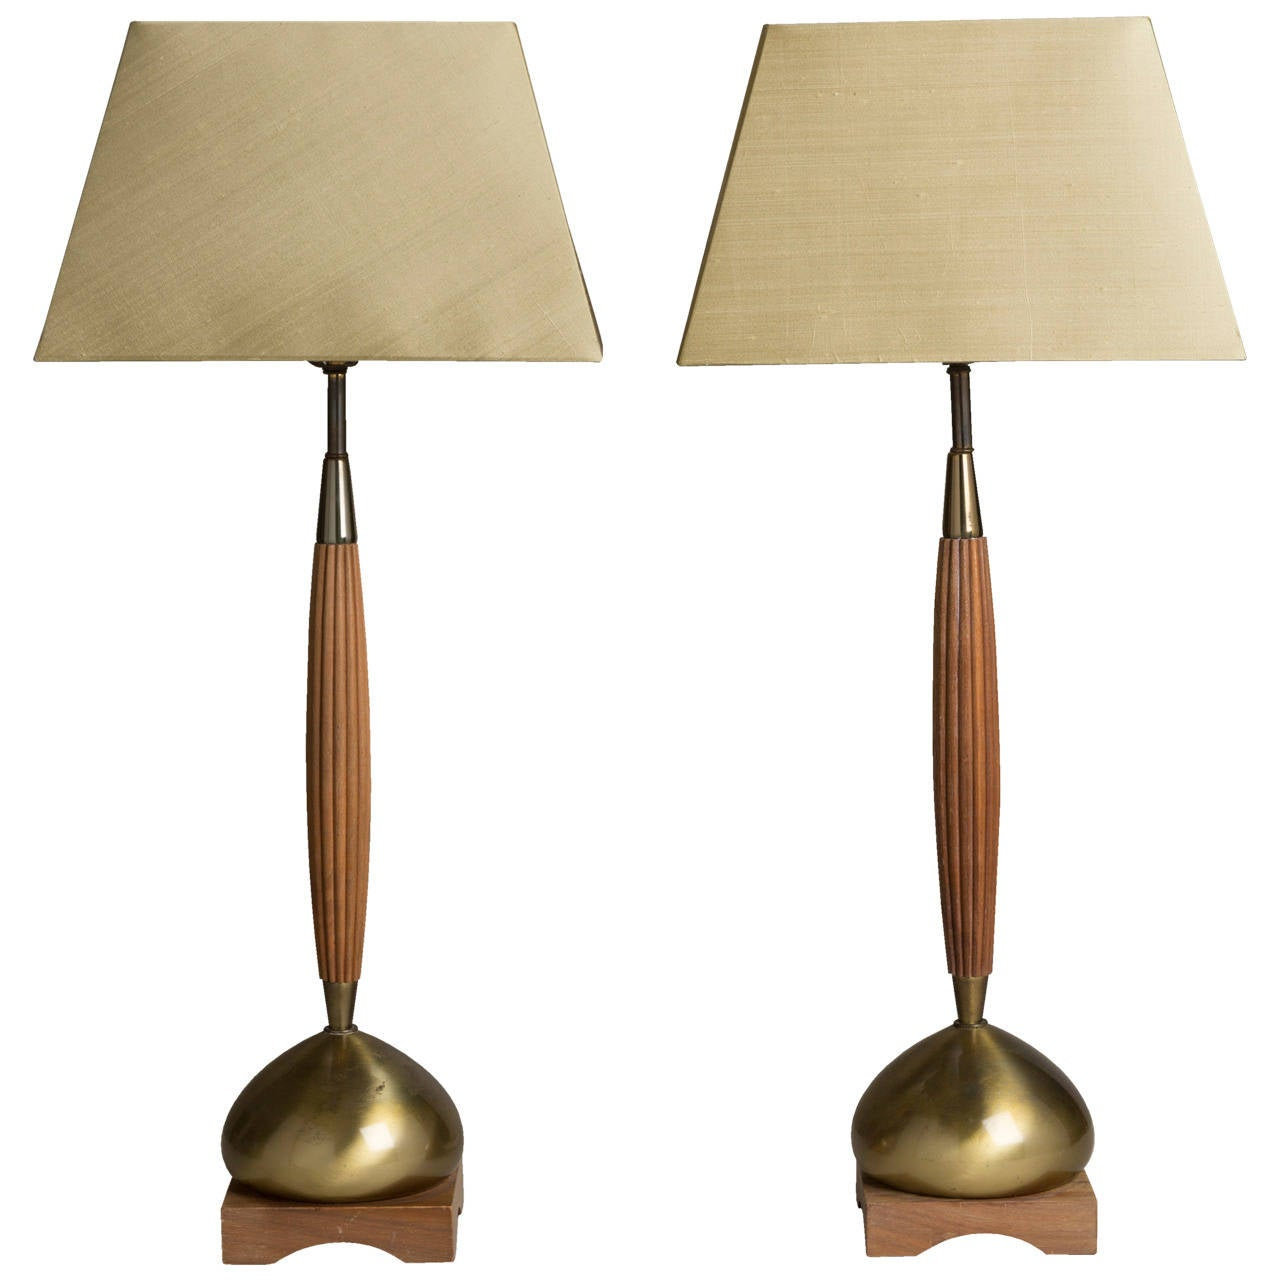 Amazing This Elegant Martz Table Lamp Is No Longer Available